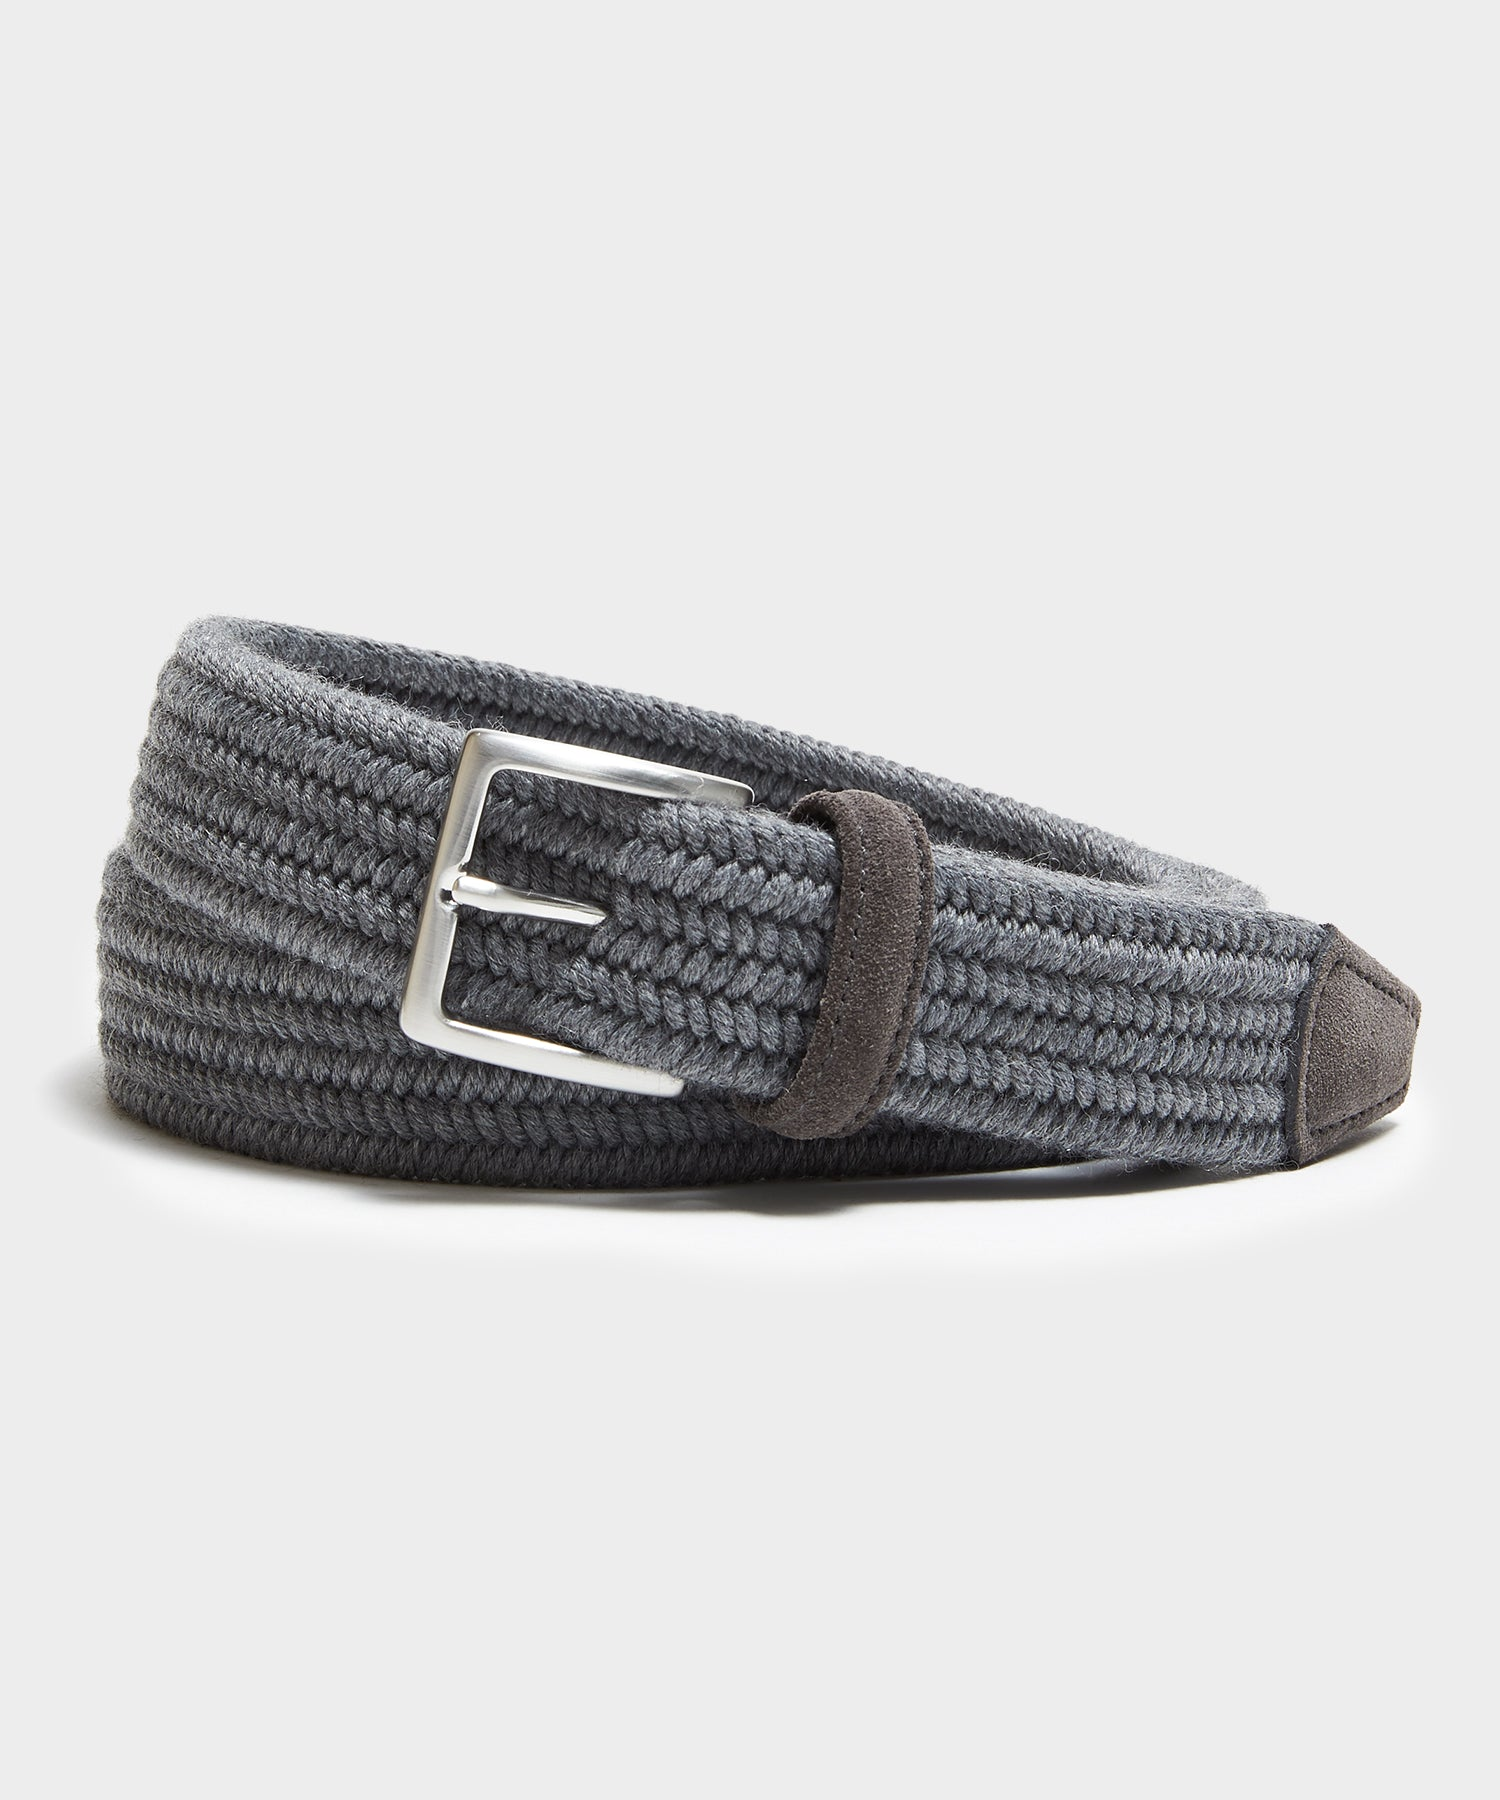 Anderson's Cashmere Stretch Woven Belt in Grey